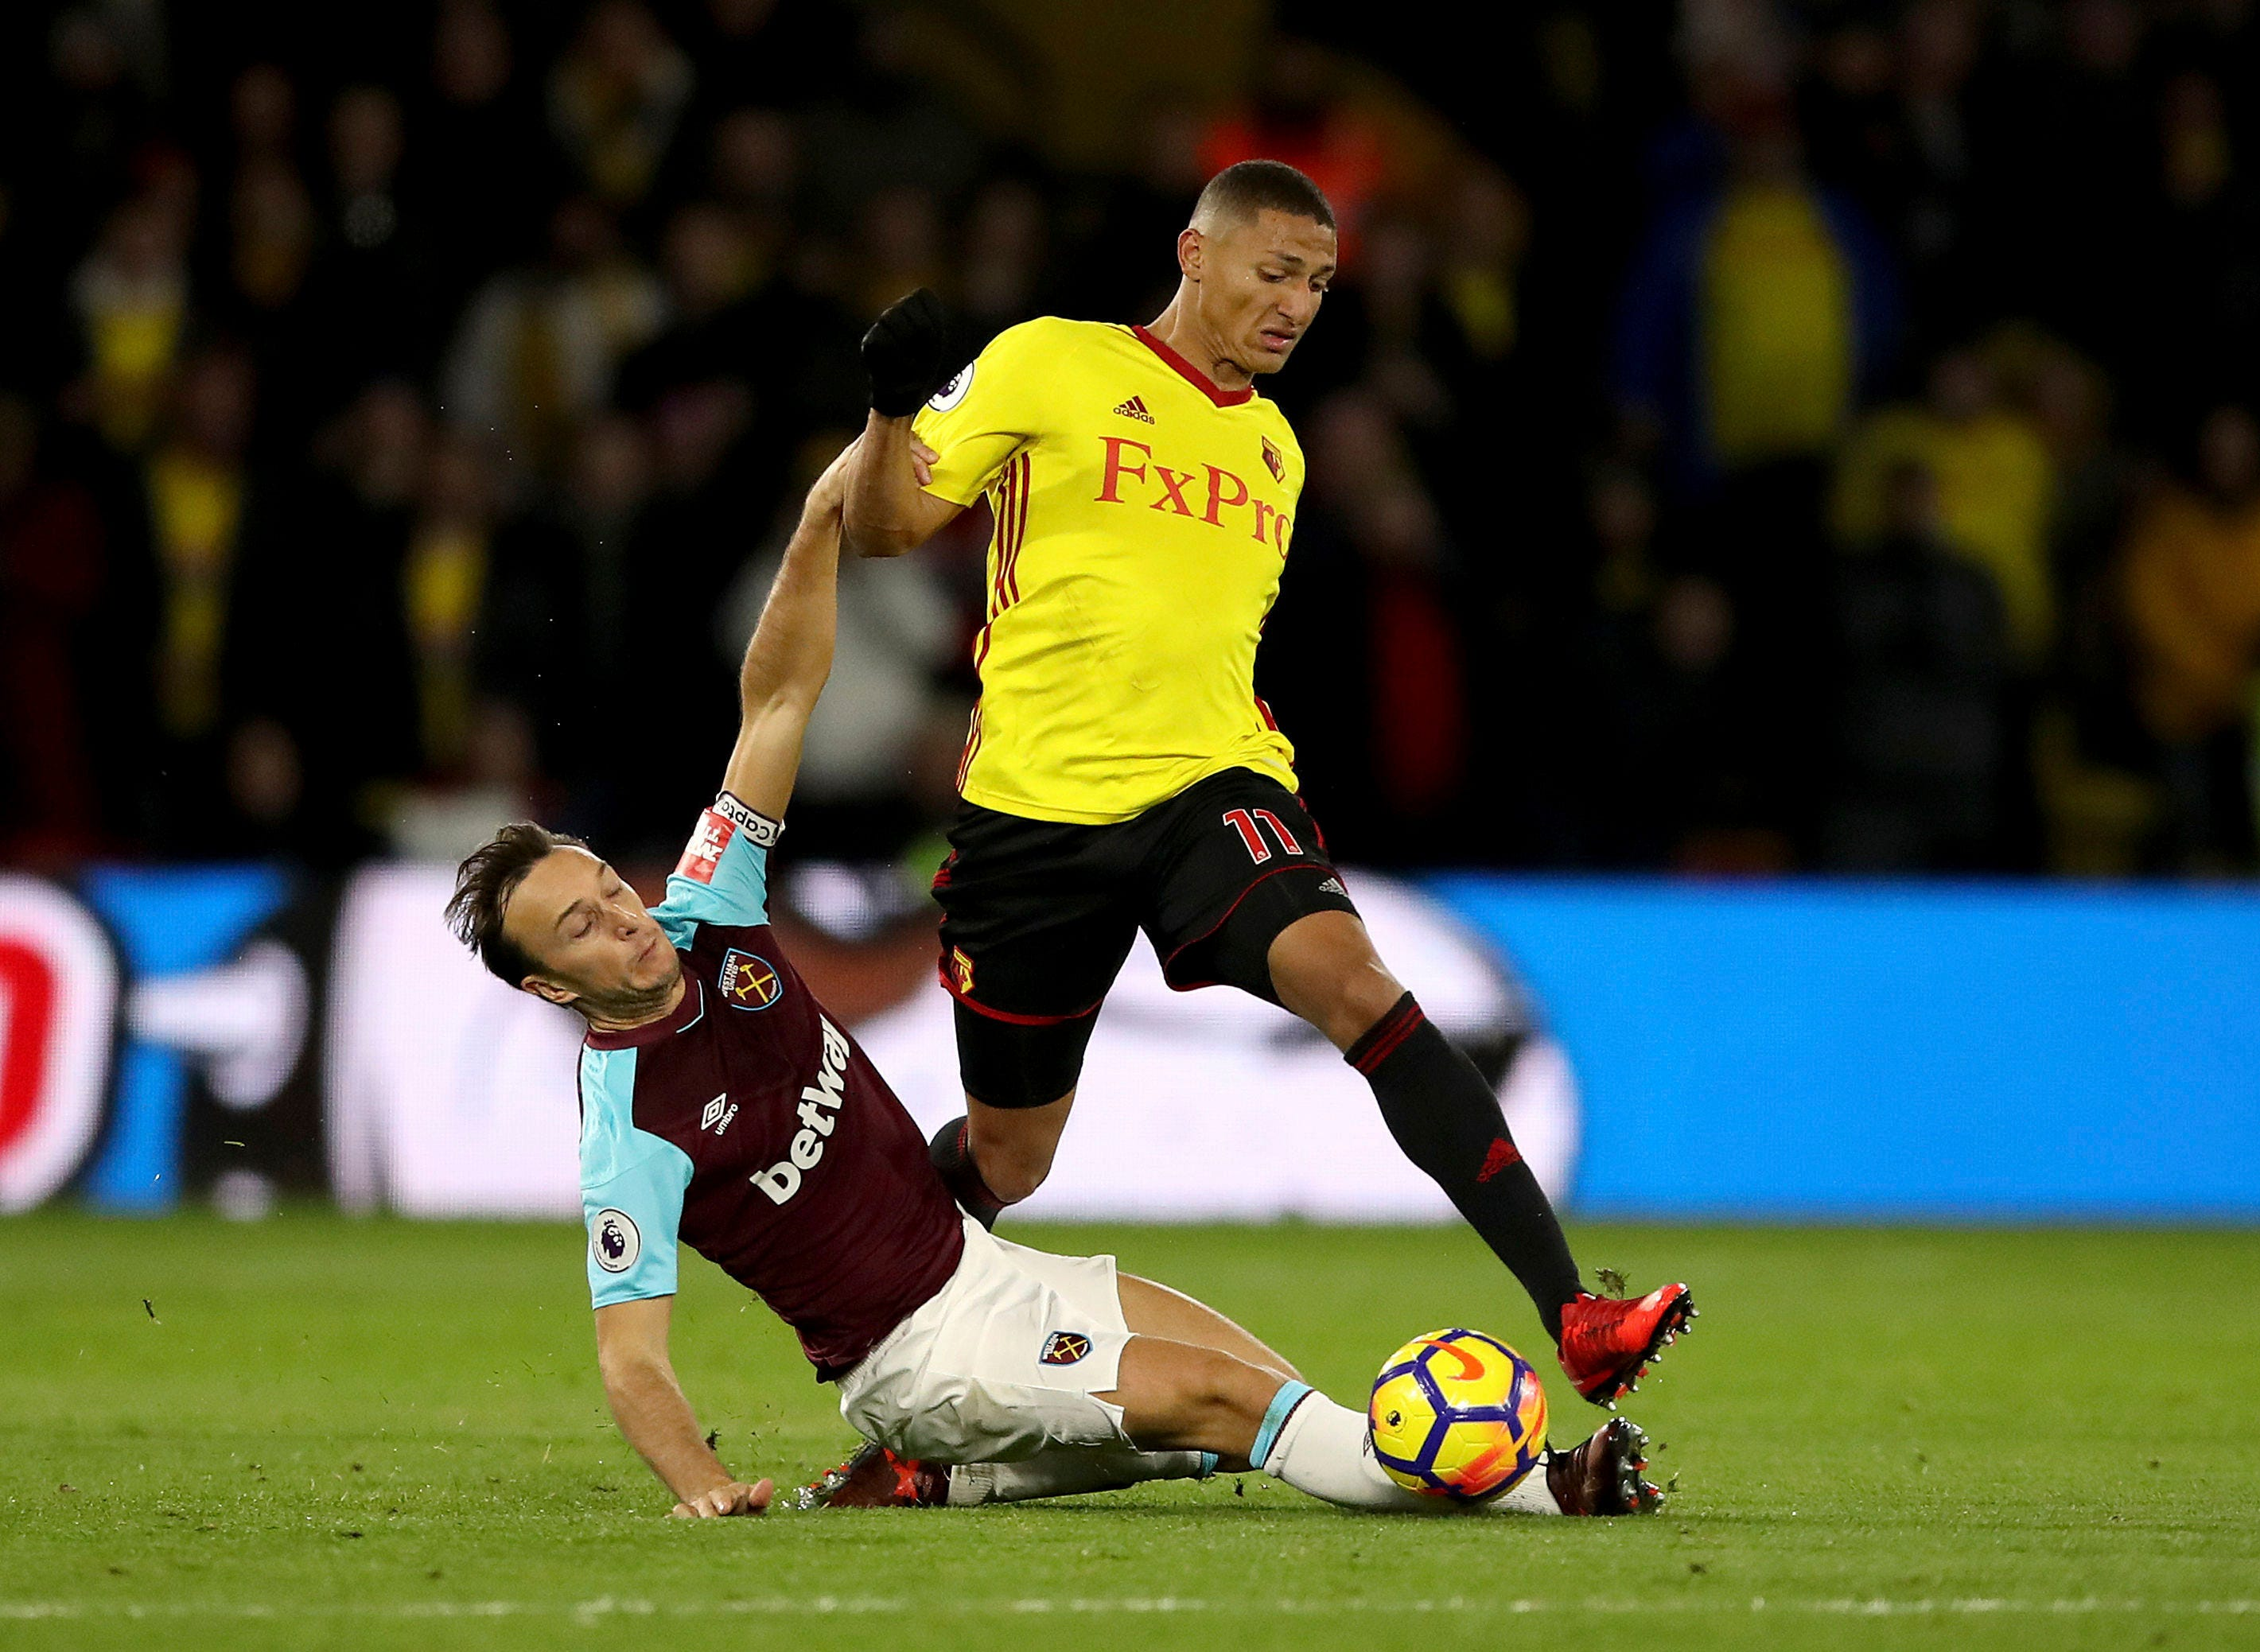 West Ham loses 2-0 at Watford in 1st match under Moyes